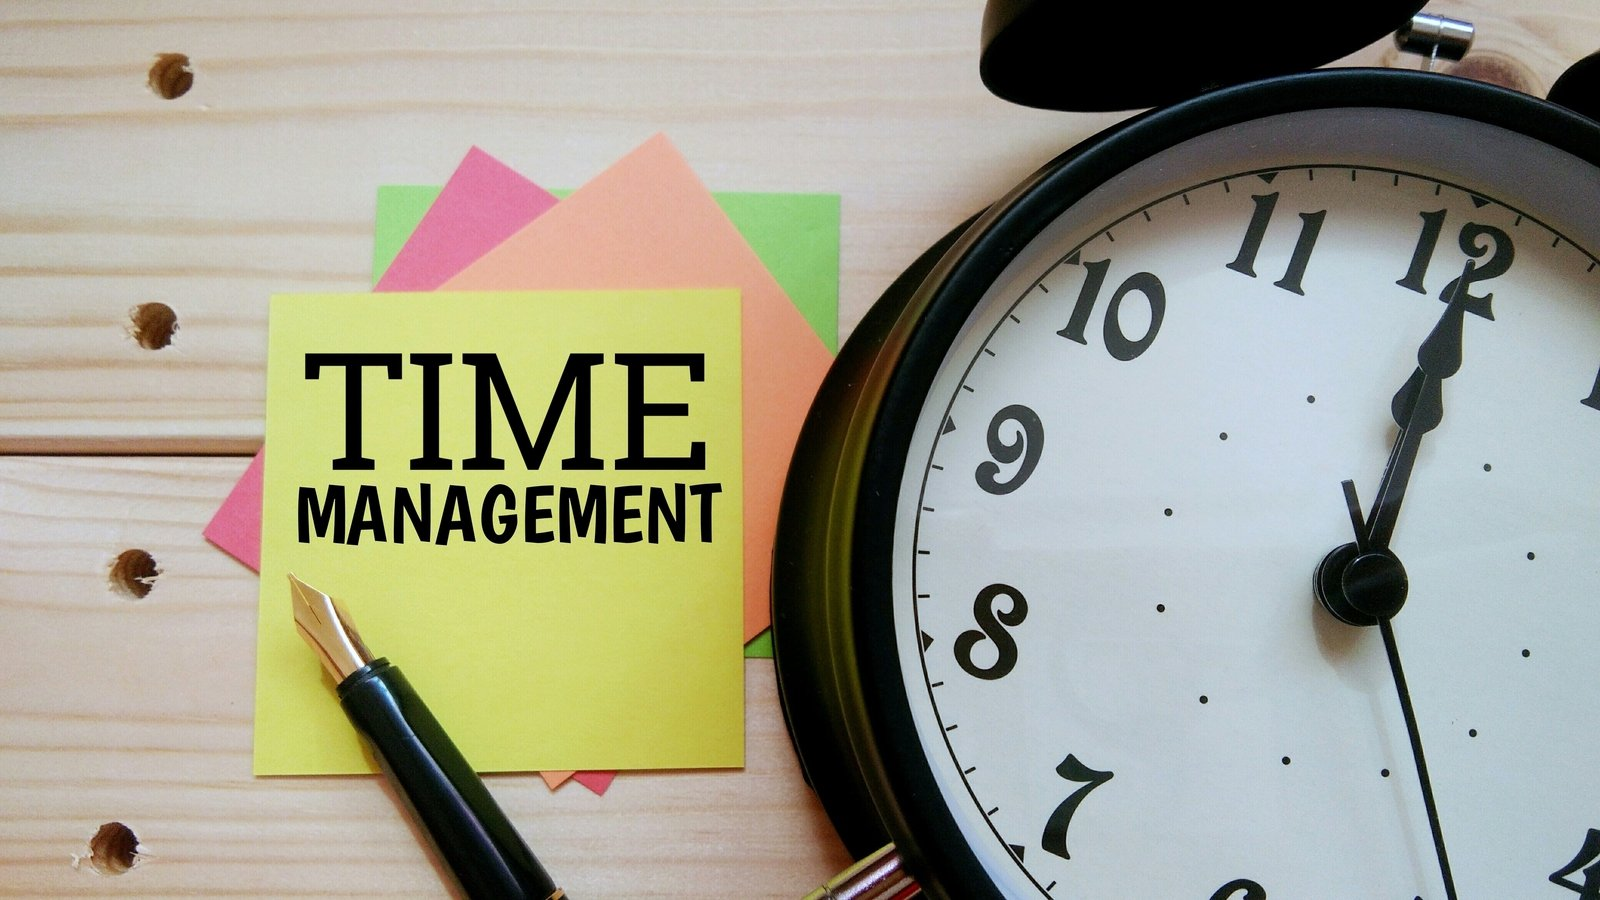 Take 5 Time Management Tips For Smes